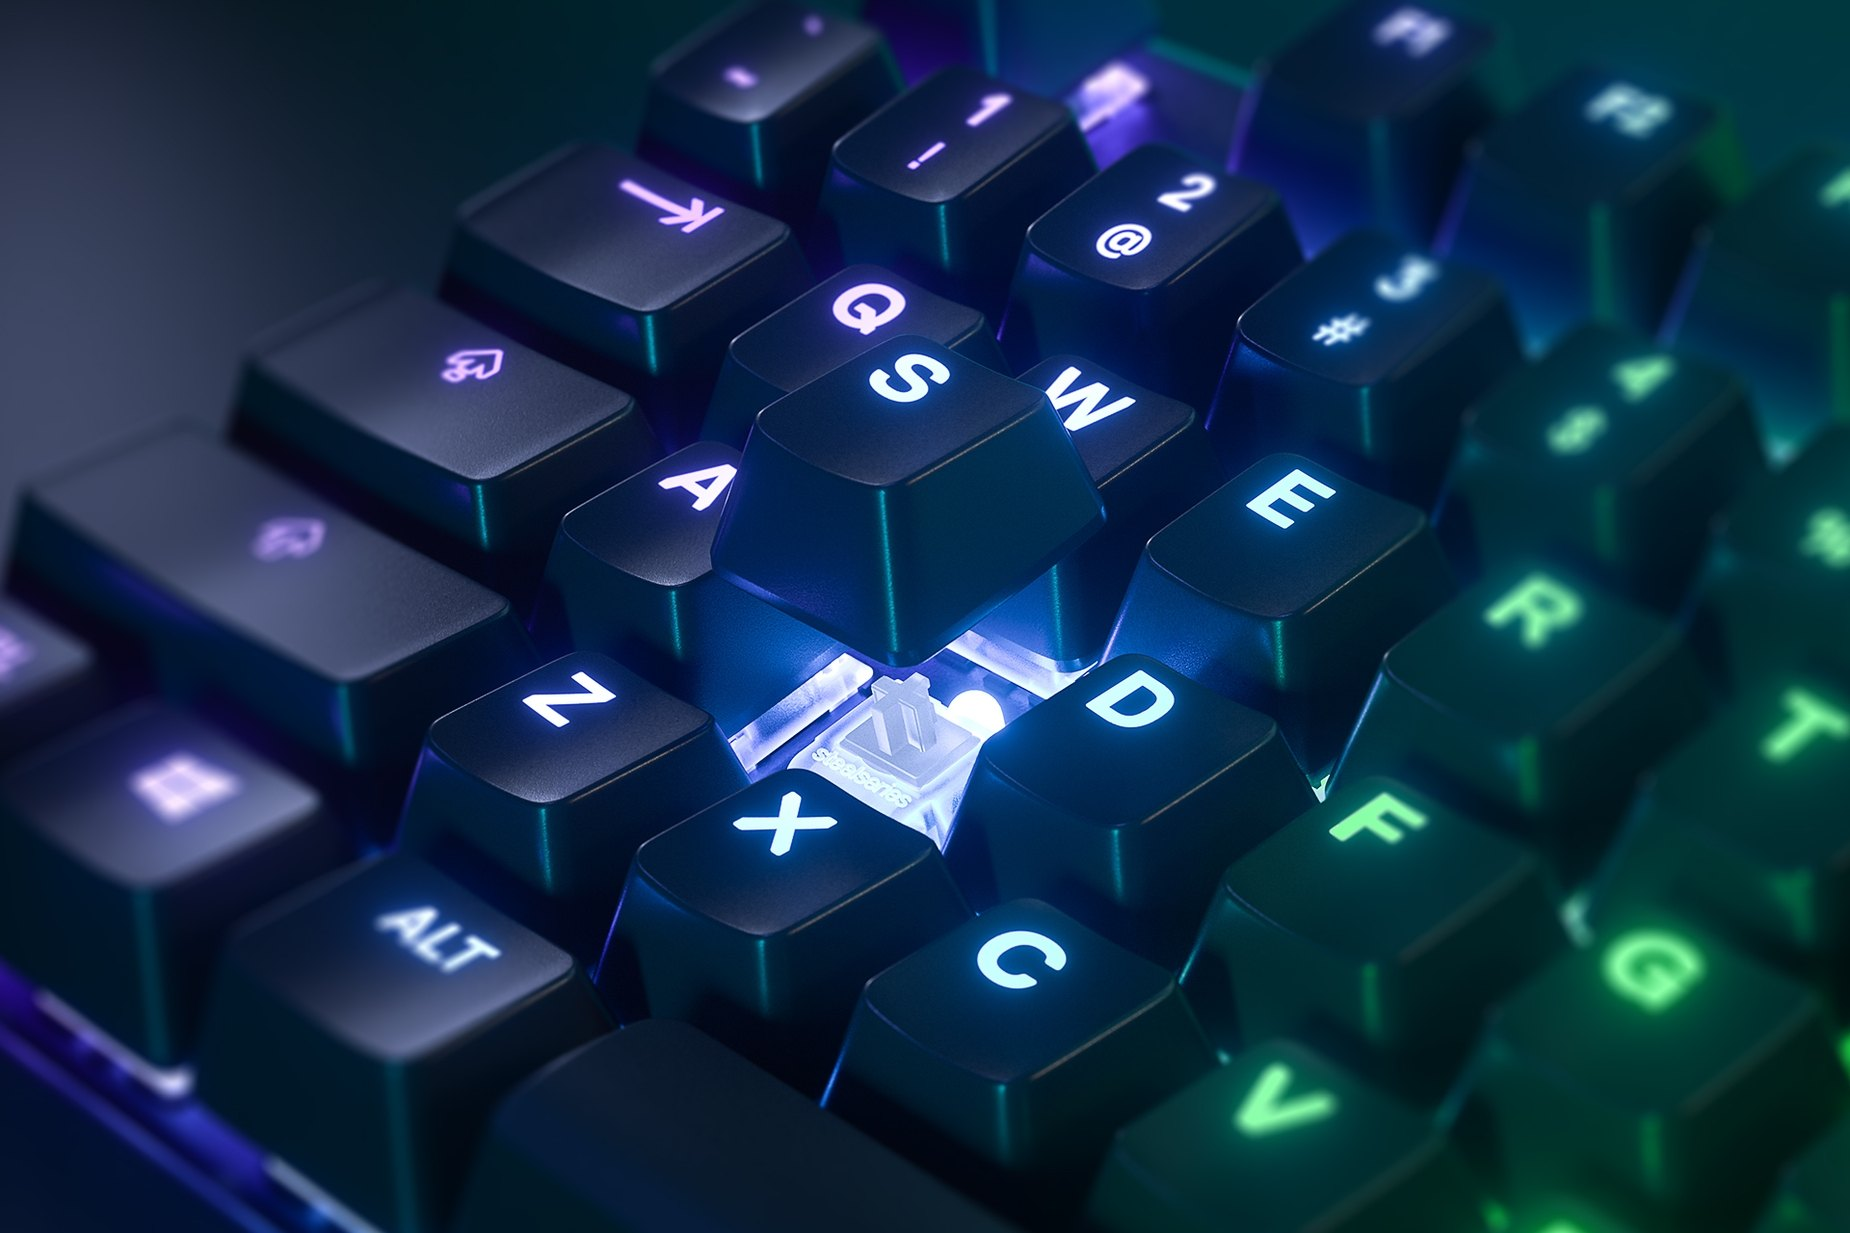 Zoomed in view of a single key on the Taiwanese - Apex Pro gaming keyboard, the key is raised up to show the SteelSeries OmniPoint Adjustable Mechanical Switch underneath